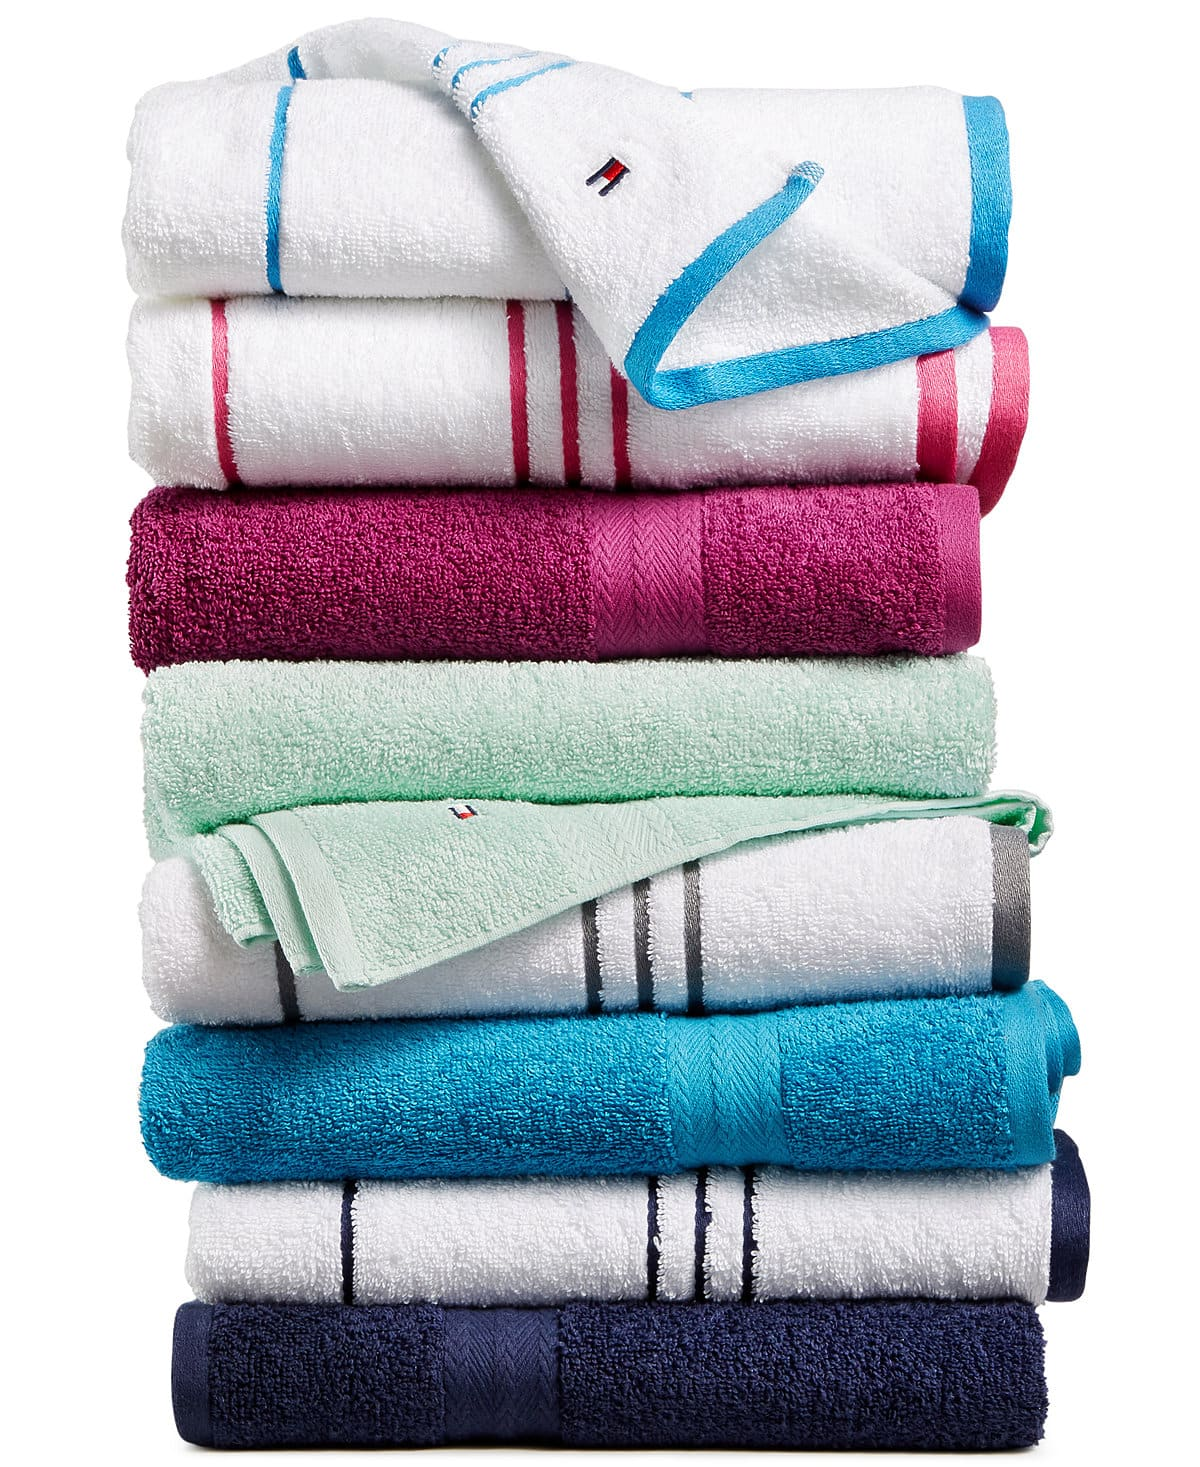 Tommy Hilfiger All American II Cotton Bath Towel Collection: $2.99-$5.99